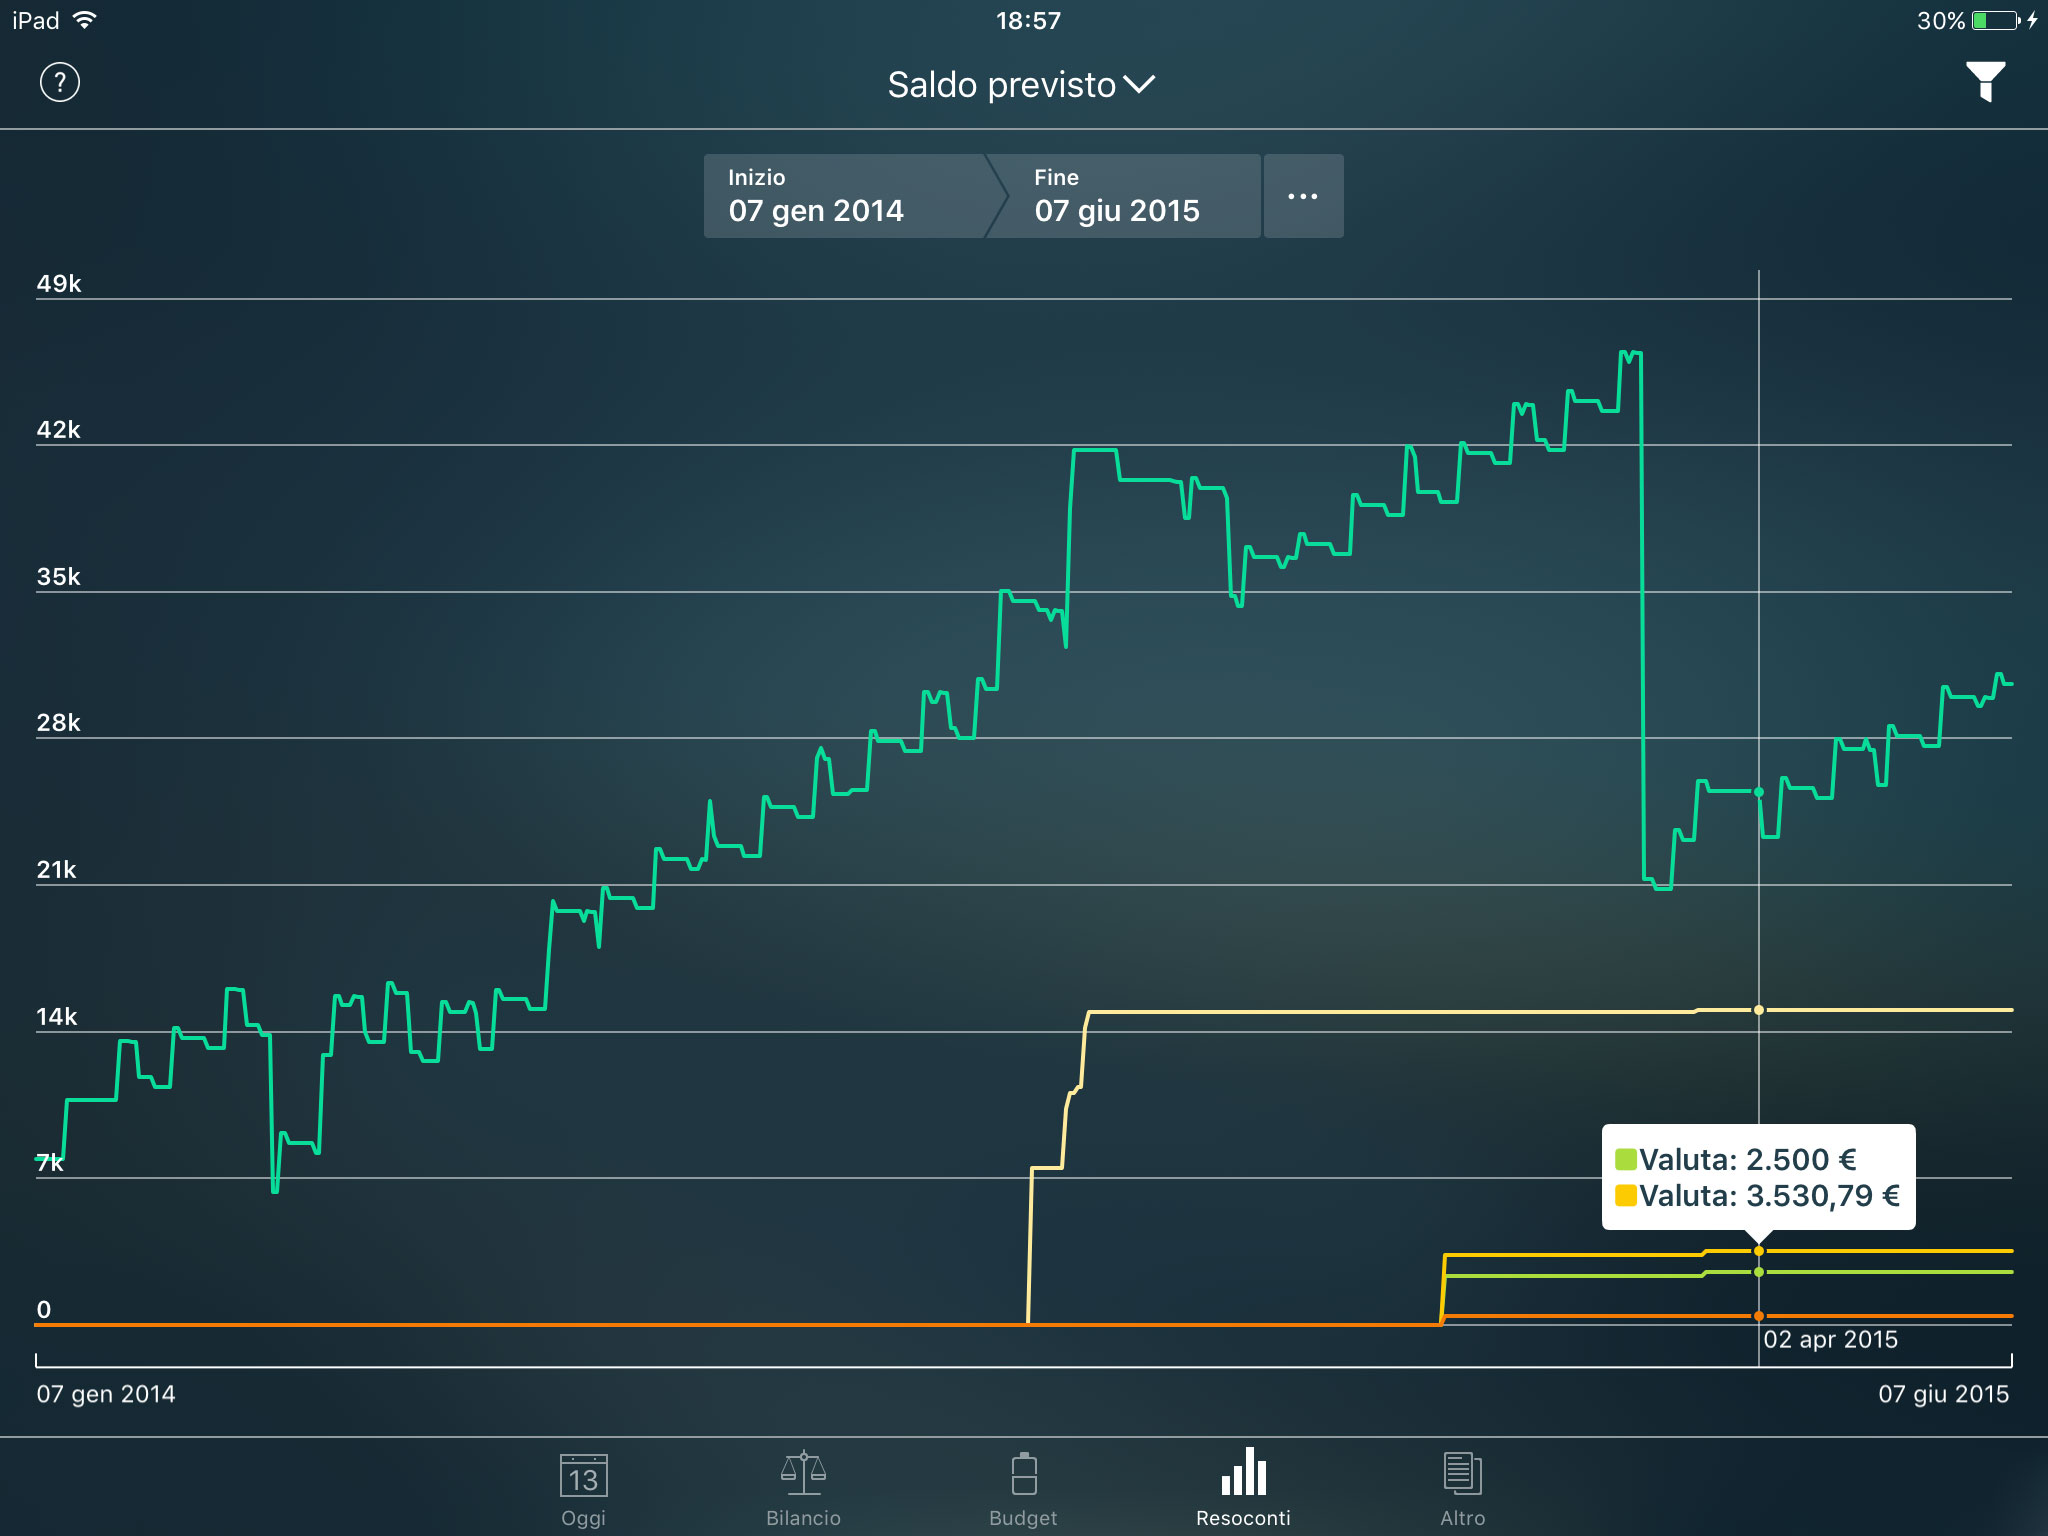 Money Pro - Resoconto Saldo previsto - iPad